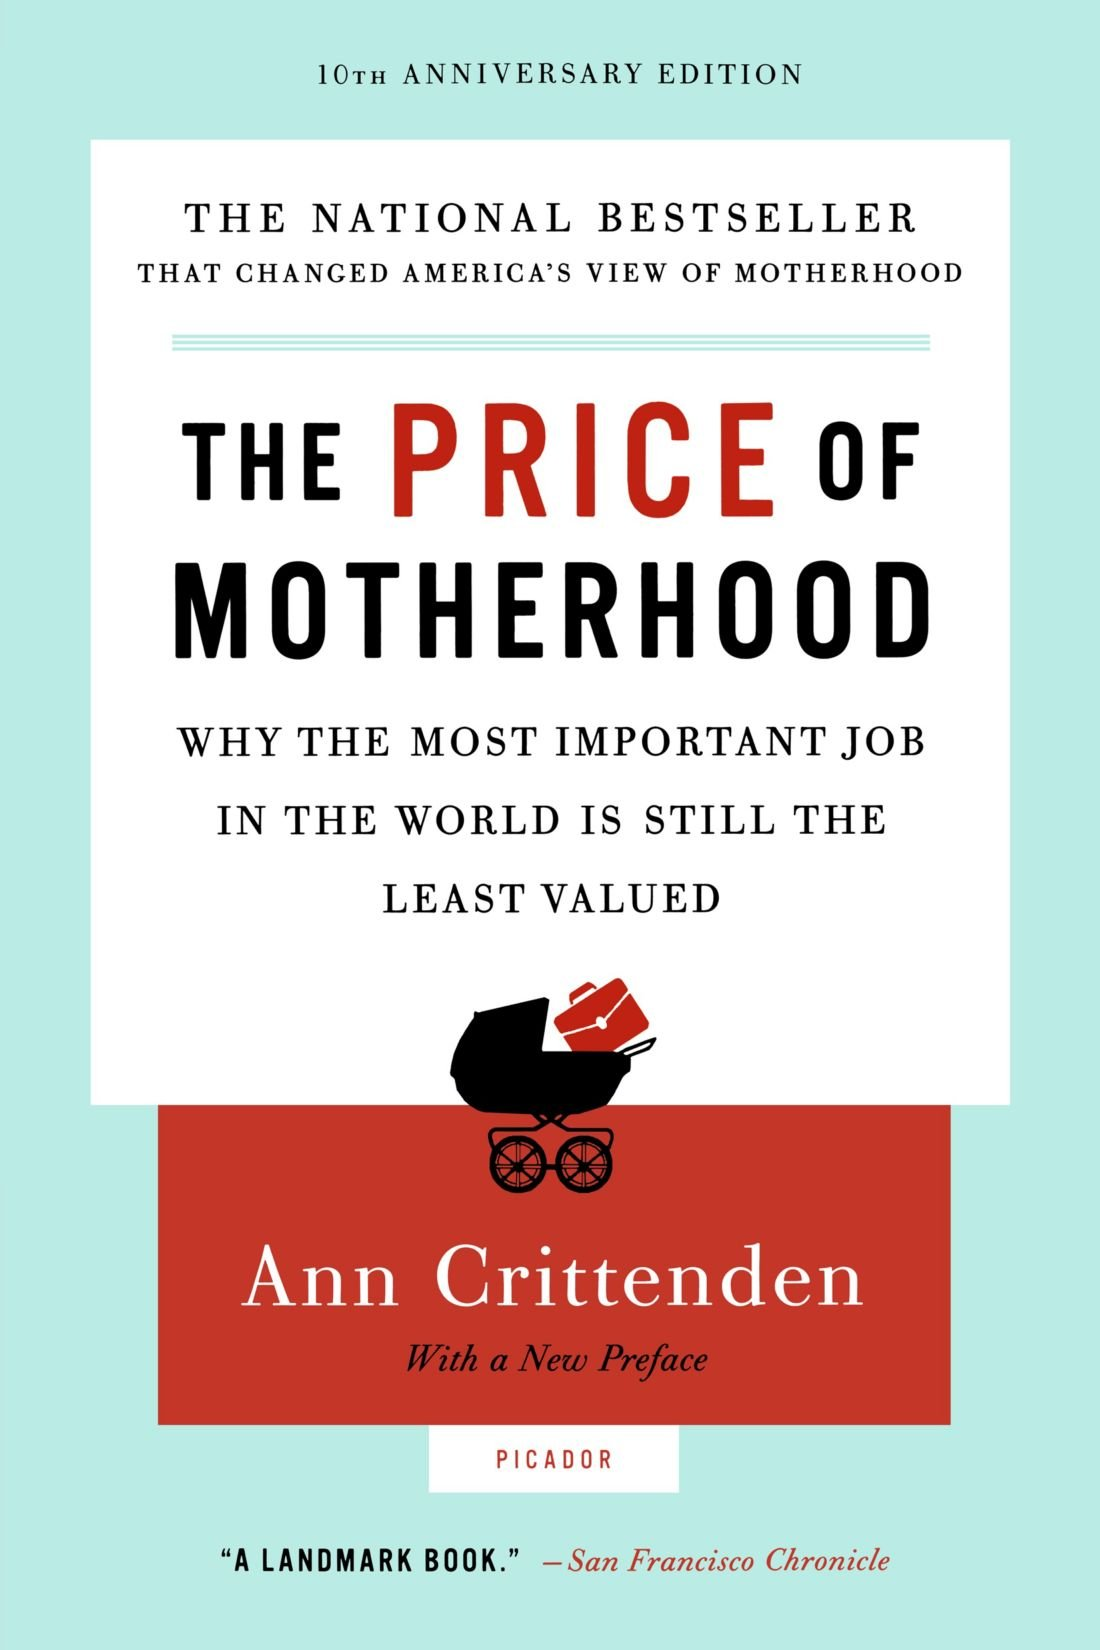 The Price of Motherhood: Why the Most Important Job in the World Is Still  the Least Valued: Ann Crittenden: 9780312655402: Amazon.com: Books